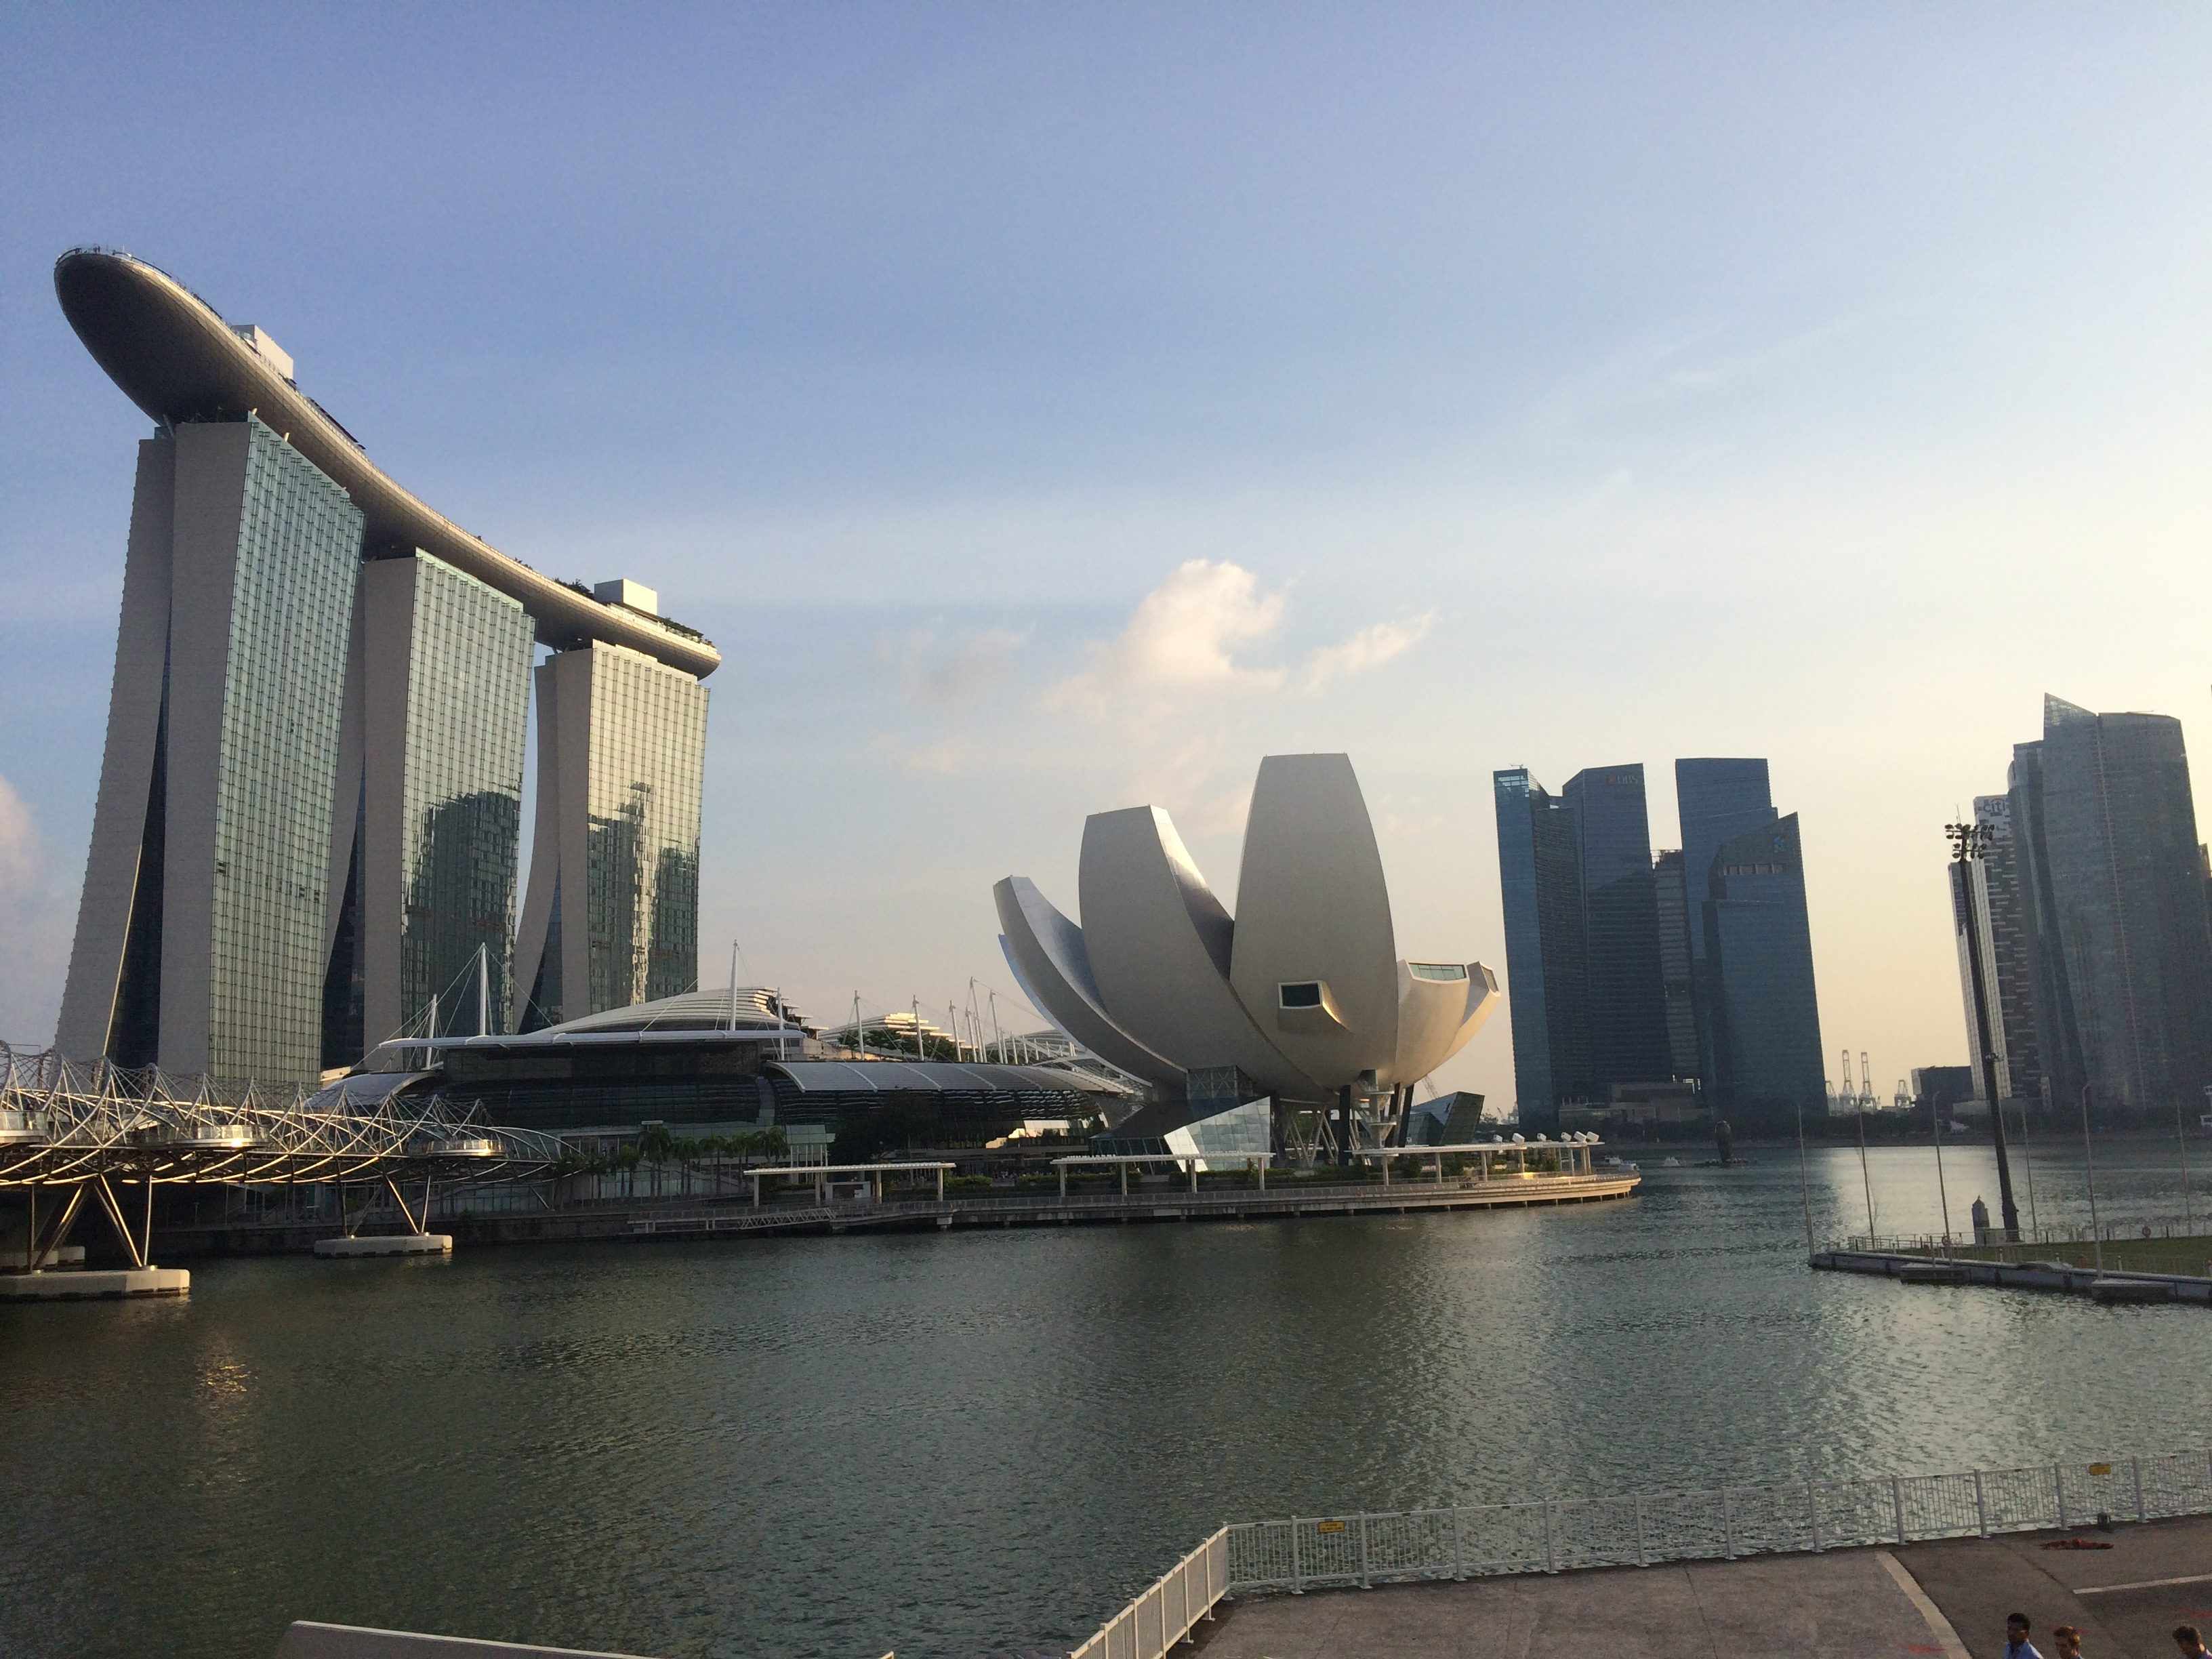 Marina sands by the bay hotel in Singapore, best hotel in Singapore, best place to stay in Singapore, sands by the bay